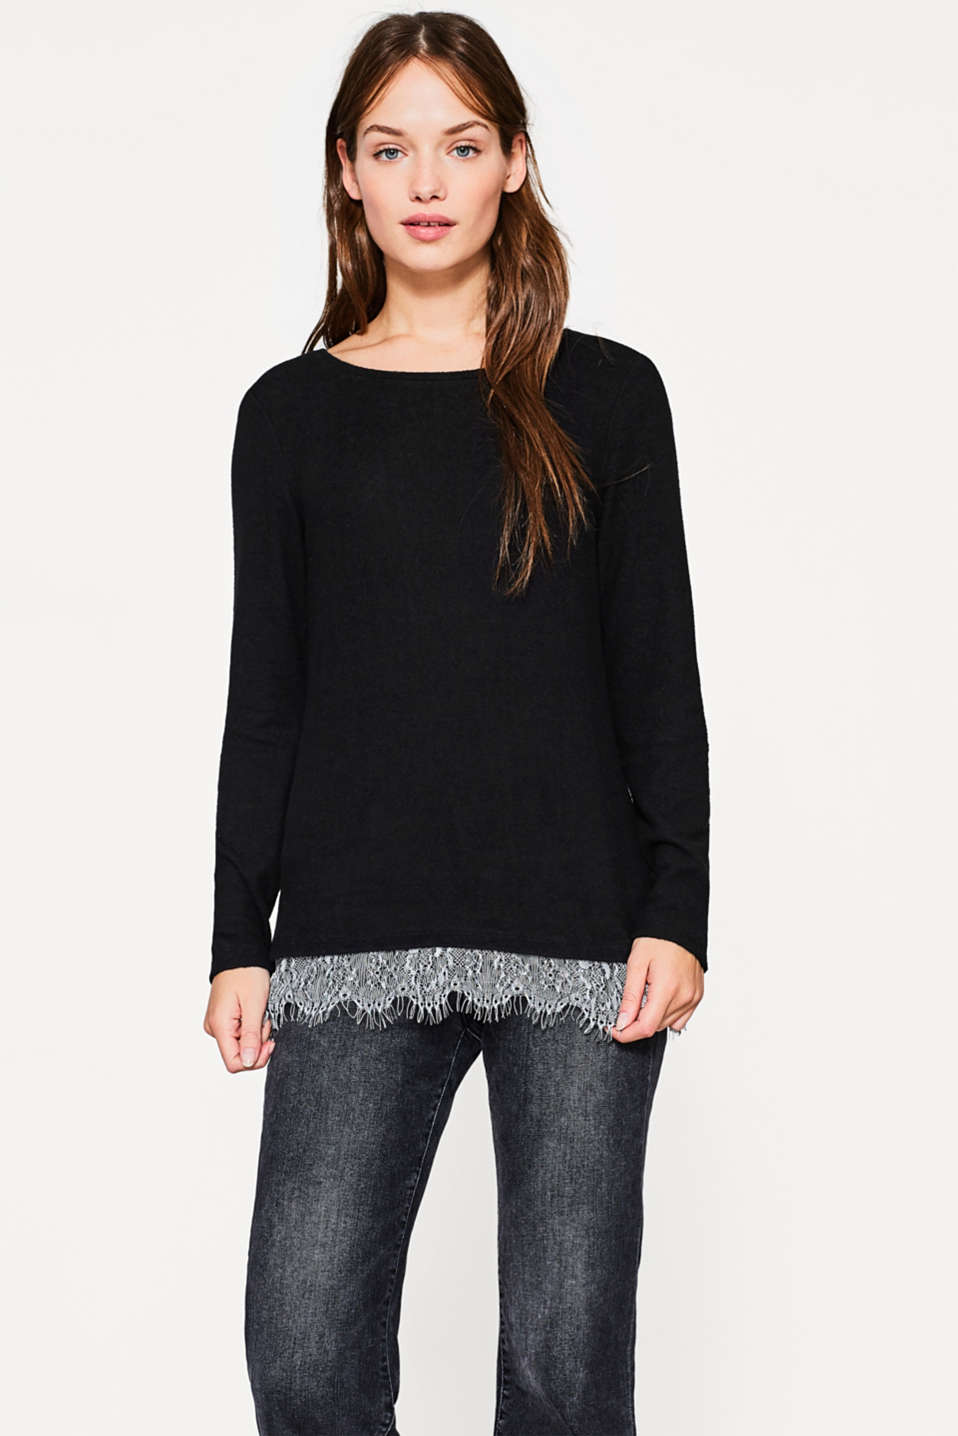 Esprit - Soft melange long sleeve top with lace